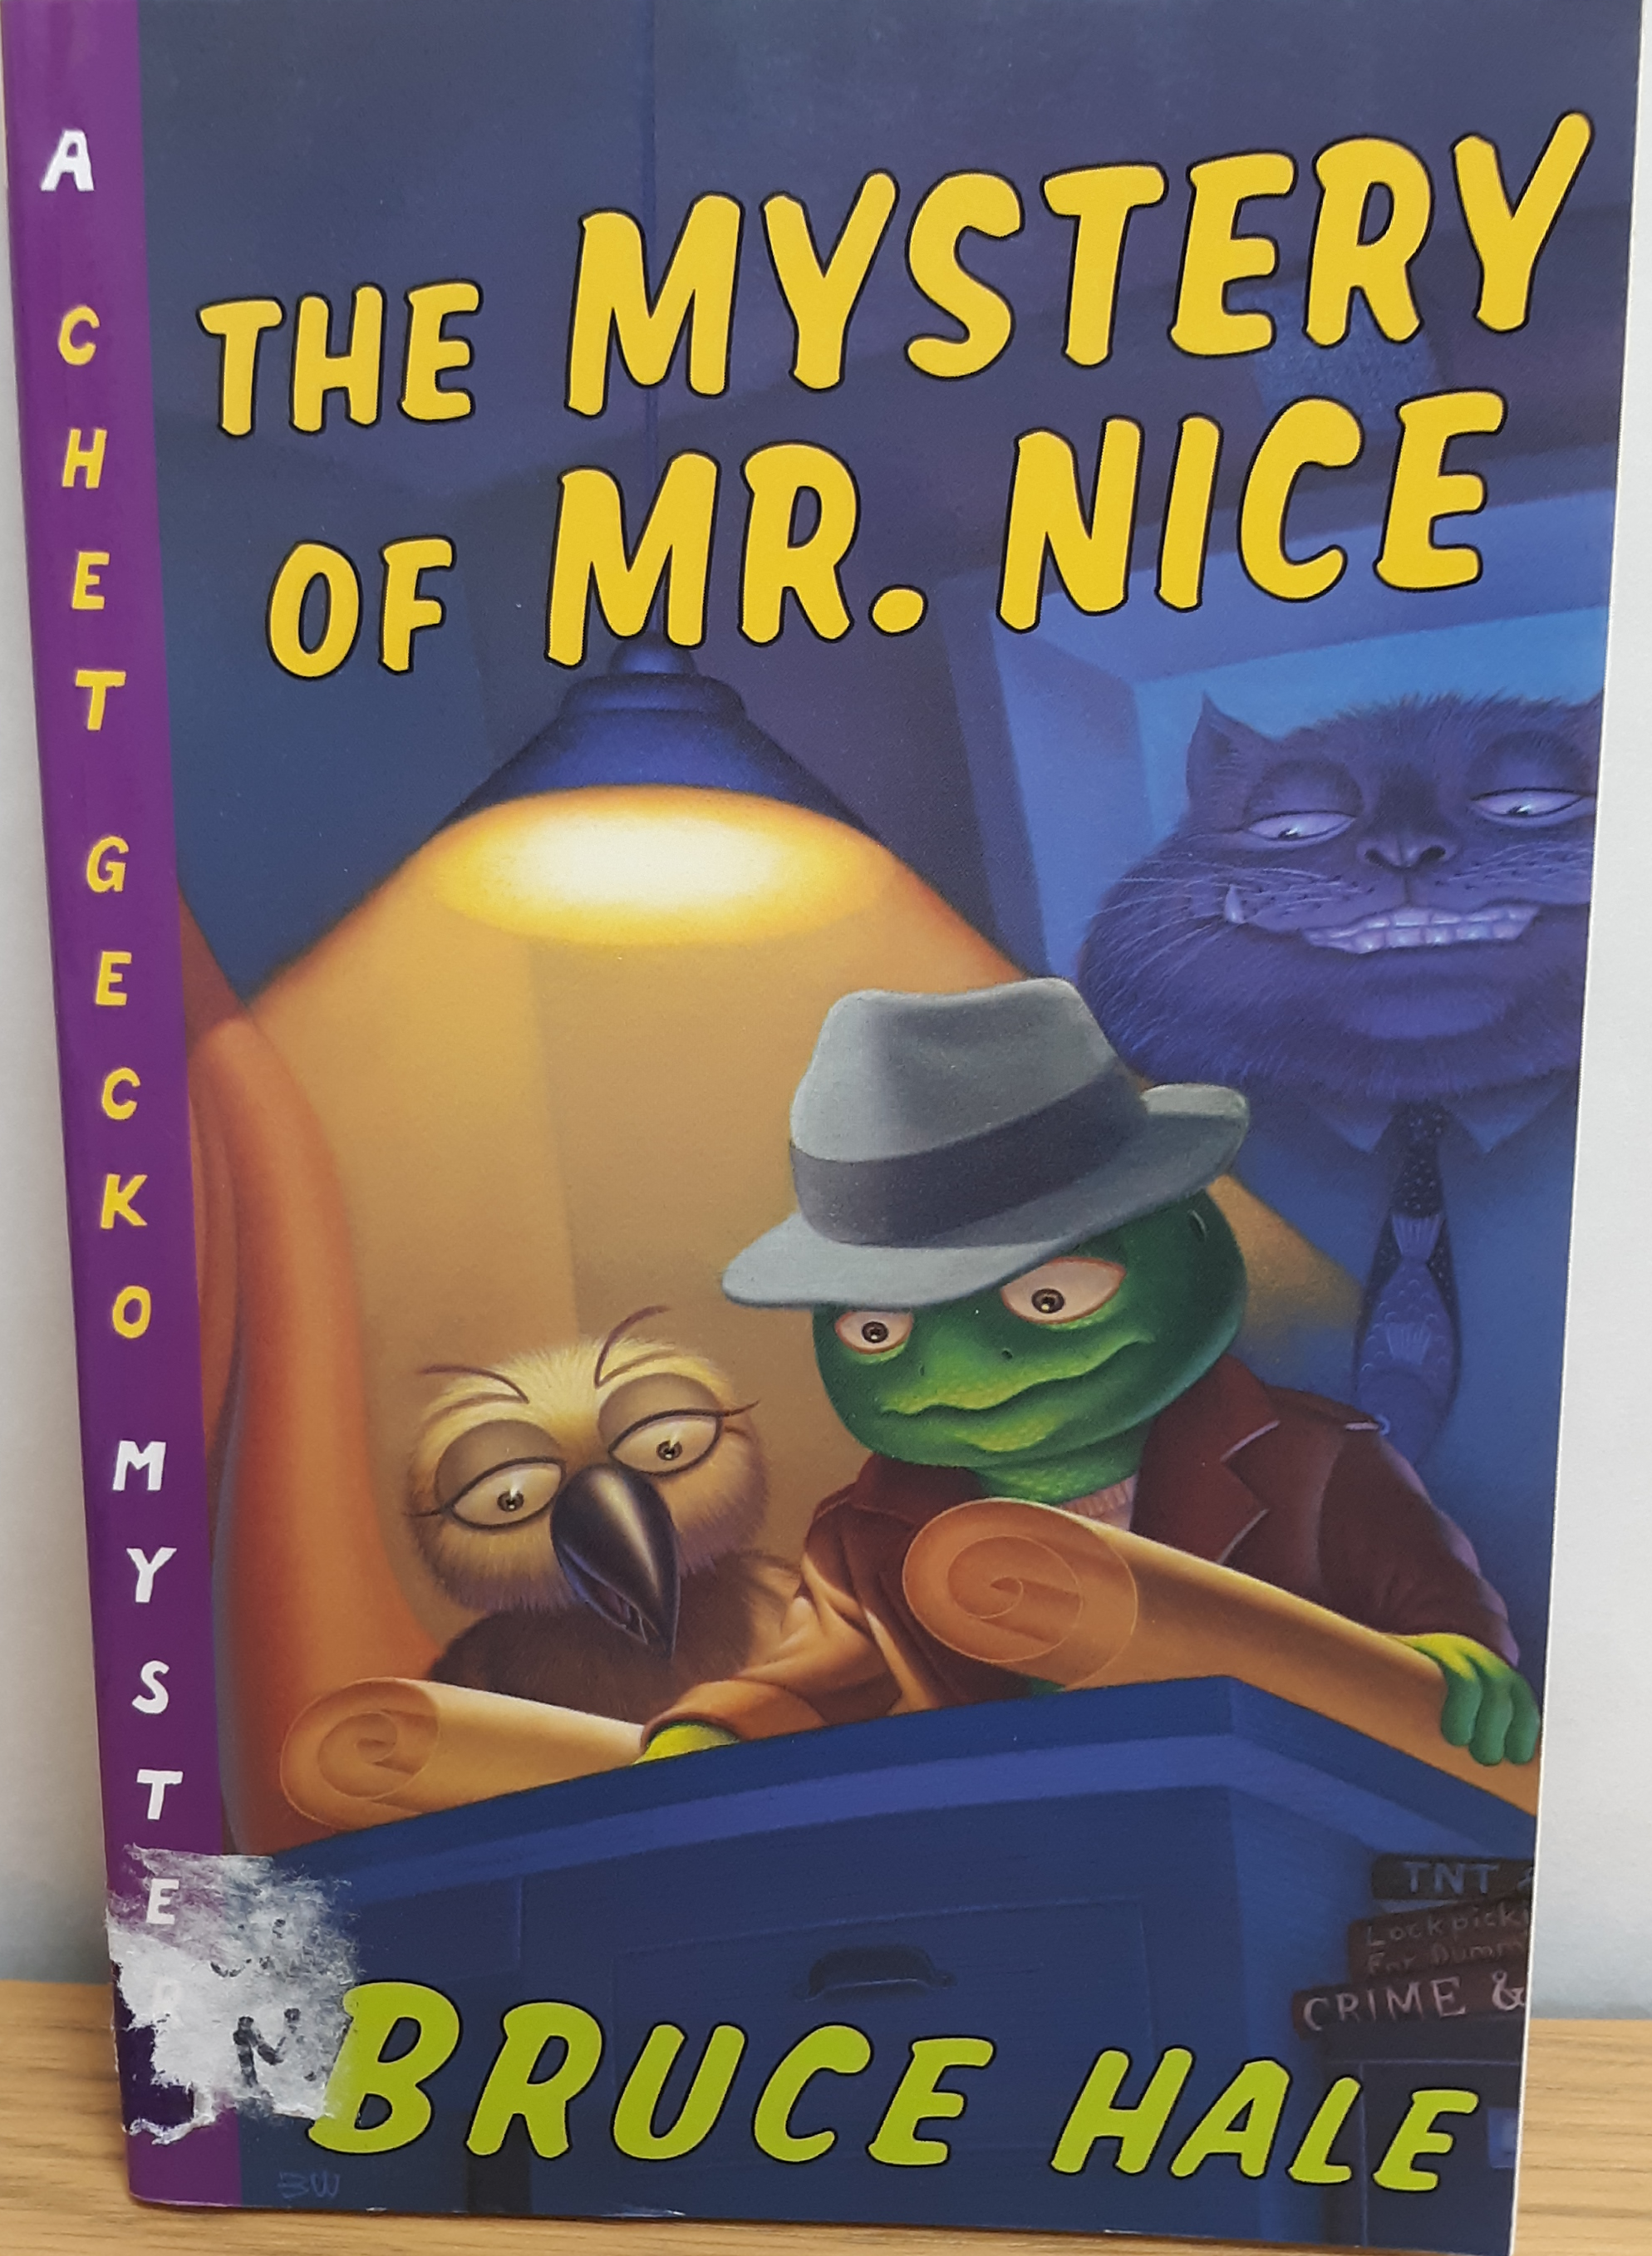 https://0201.nccdn.net/1_2/000/000/099/3b7/the-mystery-of-mr.-nice.png